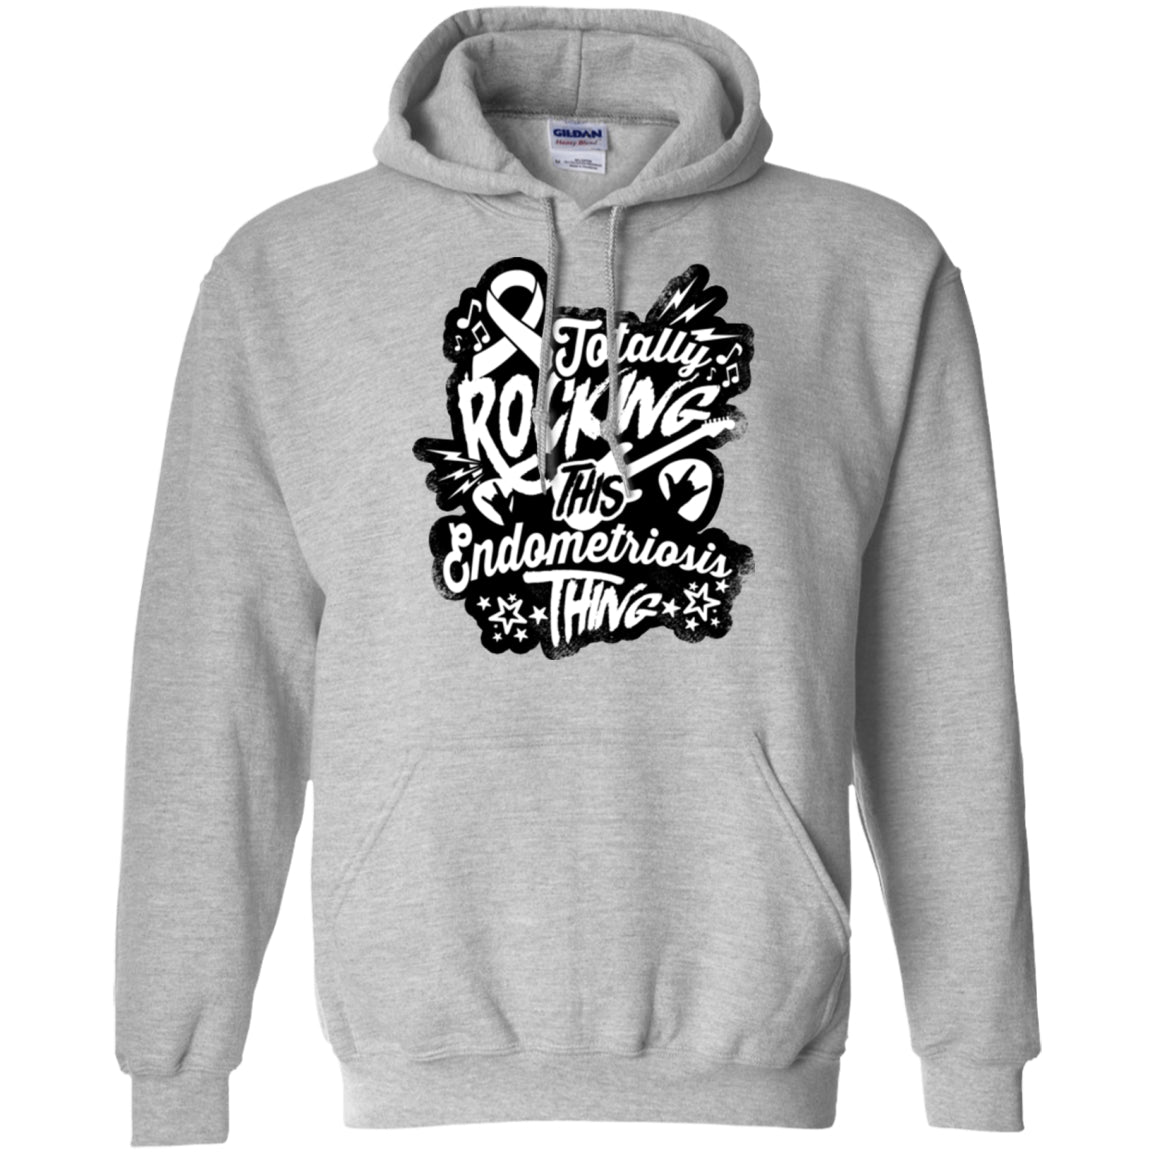 Rocking Endometriosis Pullover Hoodie 8 oz. - The Unchargeables